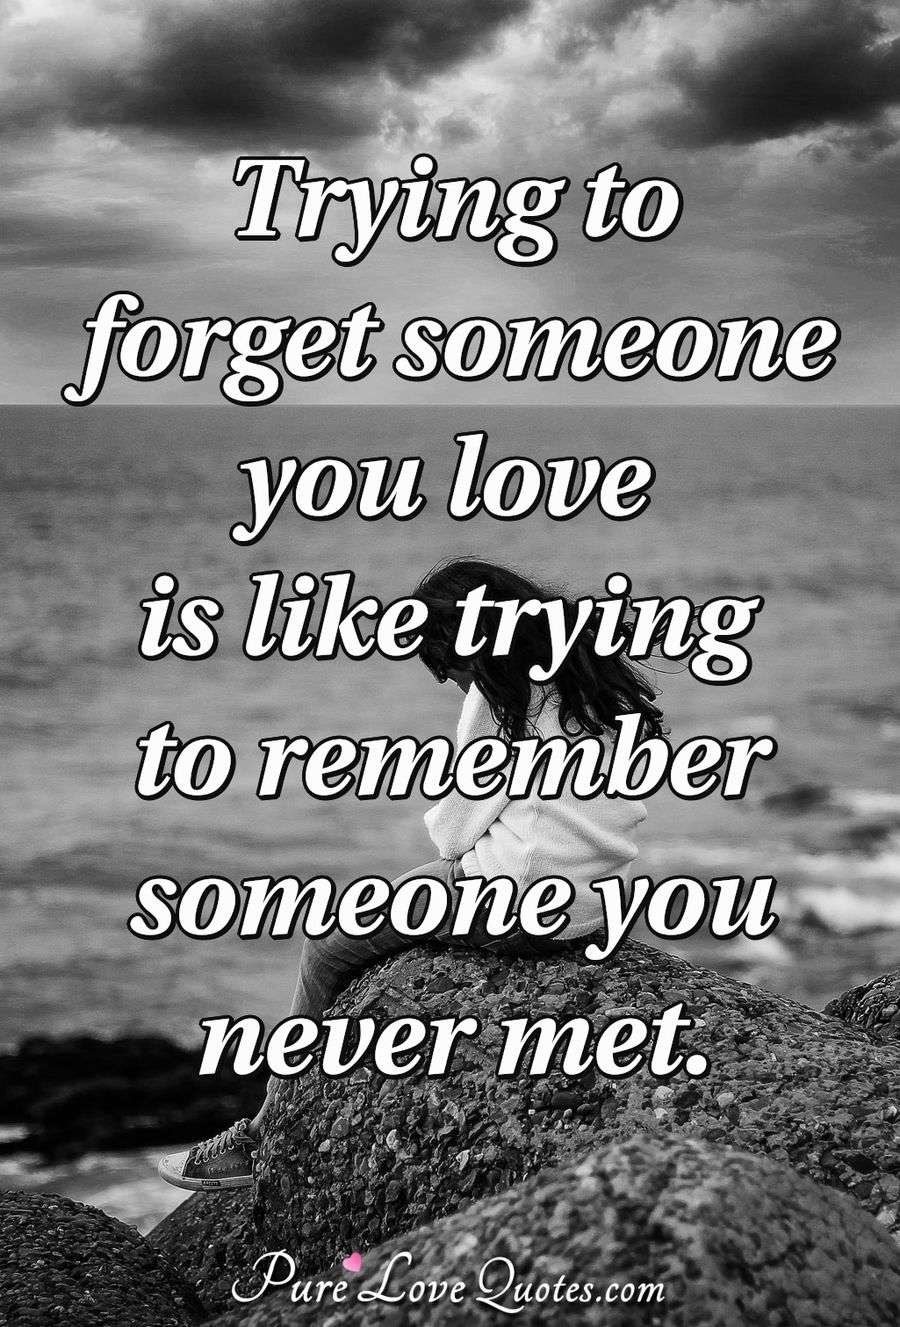 Trying to forget someone you love is like trying to